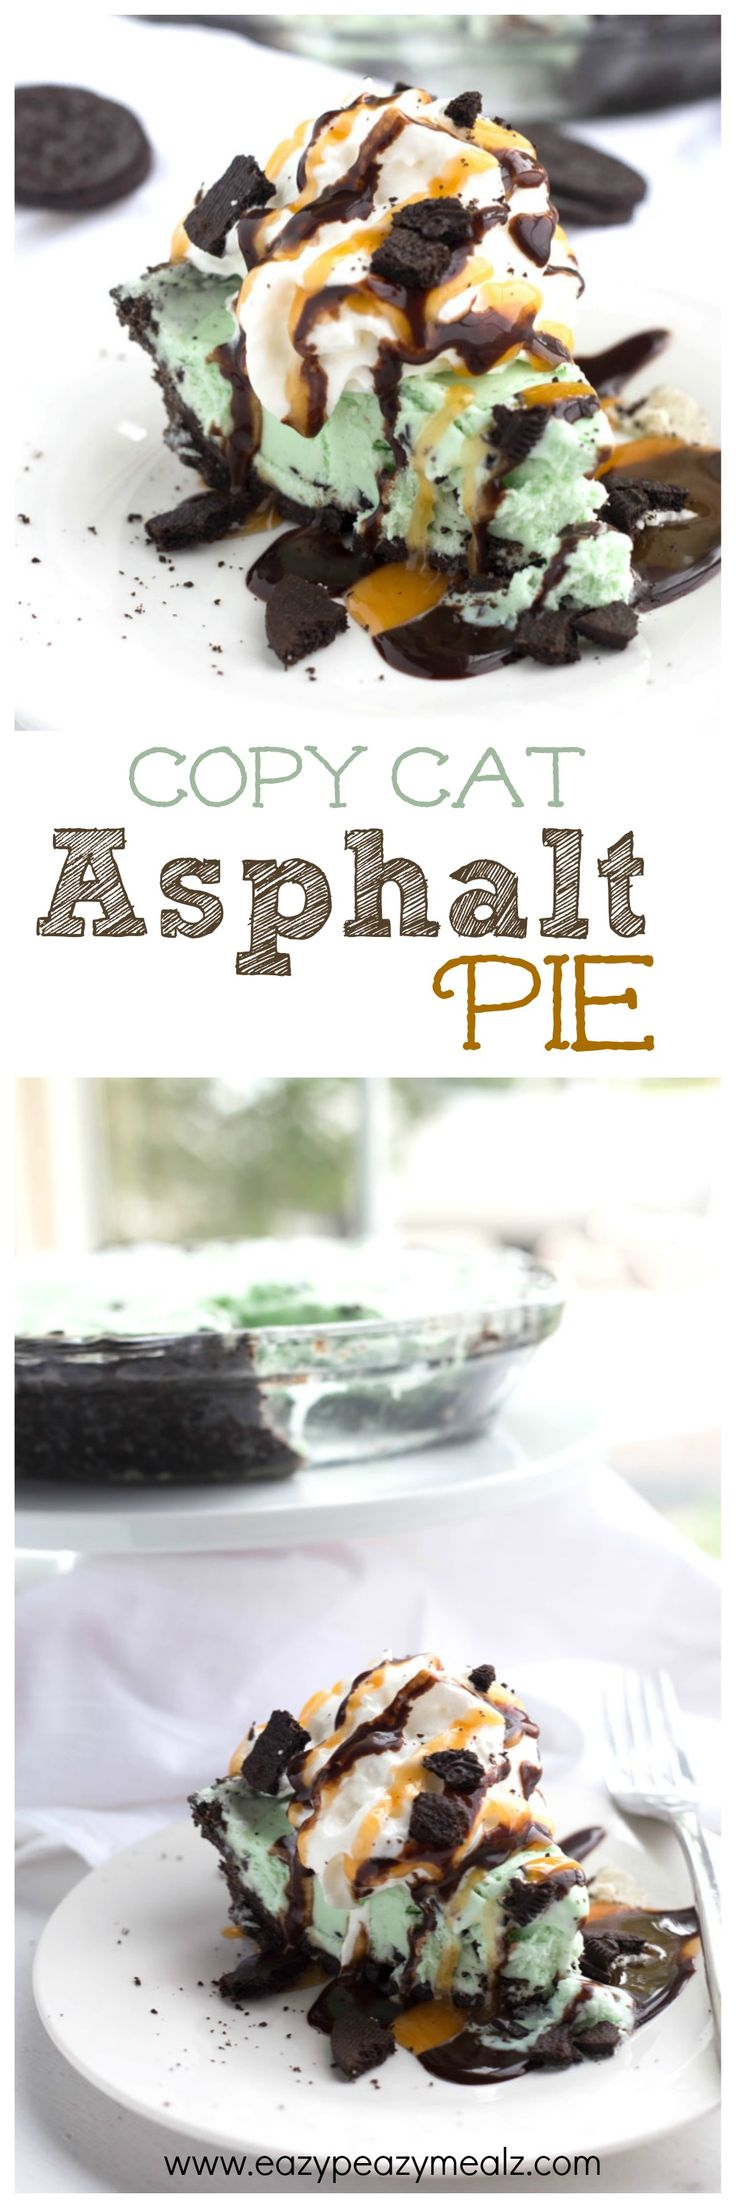 Asphalt Pie: Mint chocolate chip ice cream pie with OREO cookie crust and tons of delicious toppings. #ad #OREOmultipack - Eazy Peazy Mealz